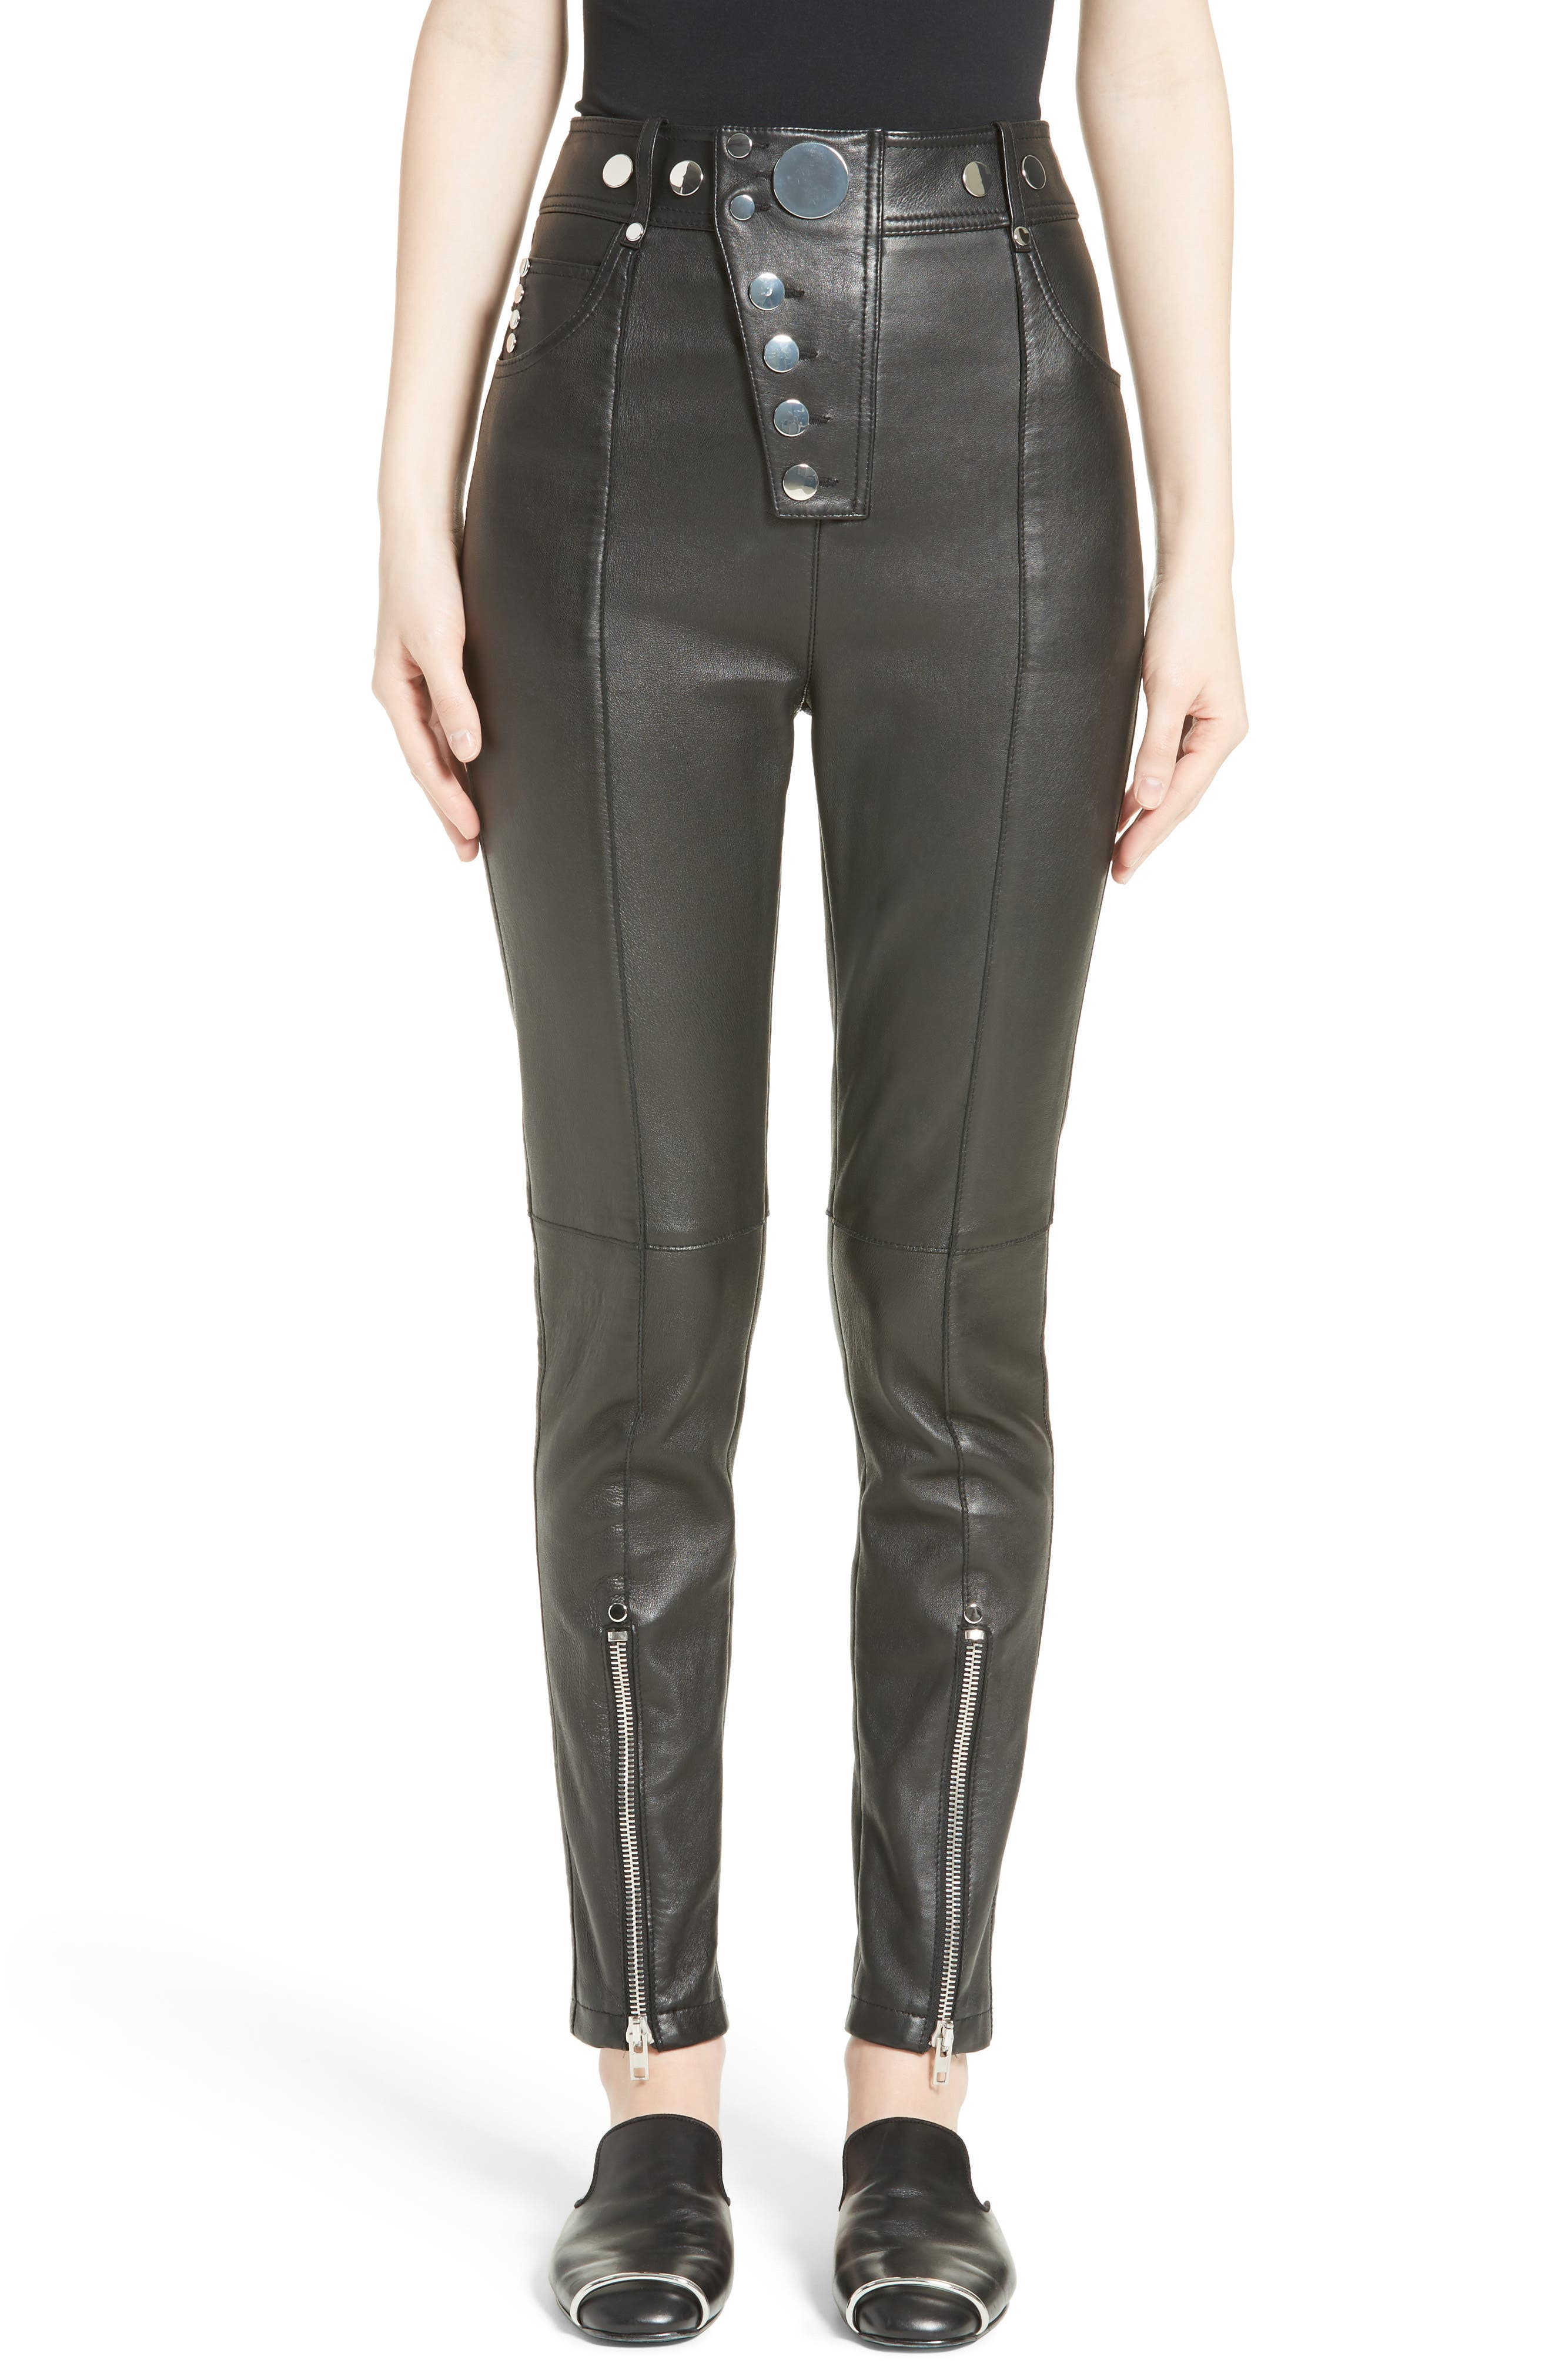 Alternate Image 1 Selected - Alexander Wang High Waist Leather Pants